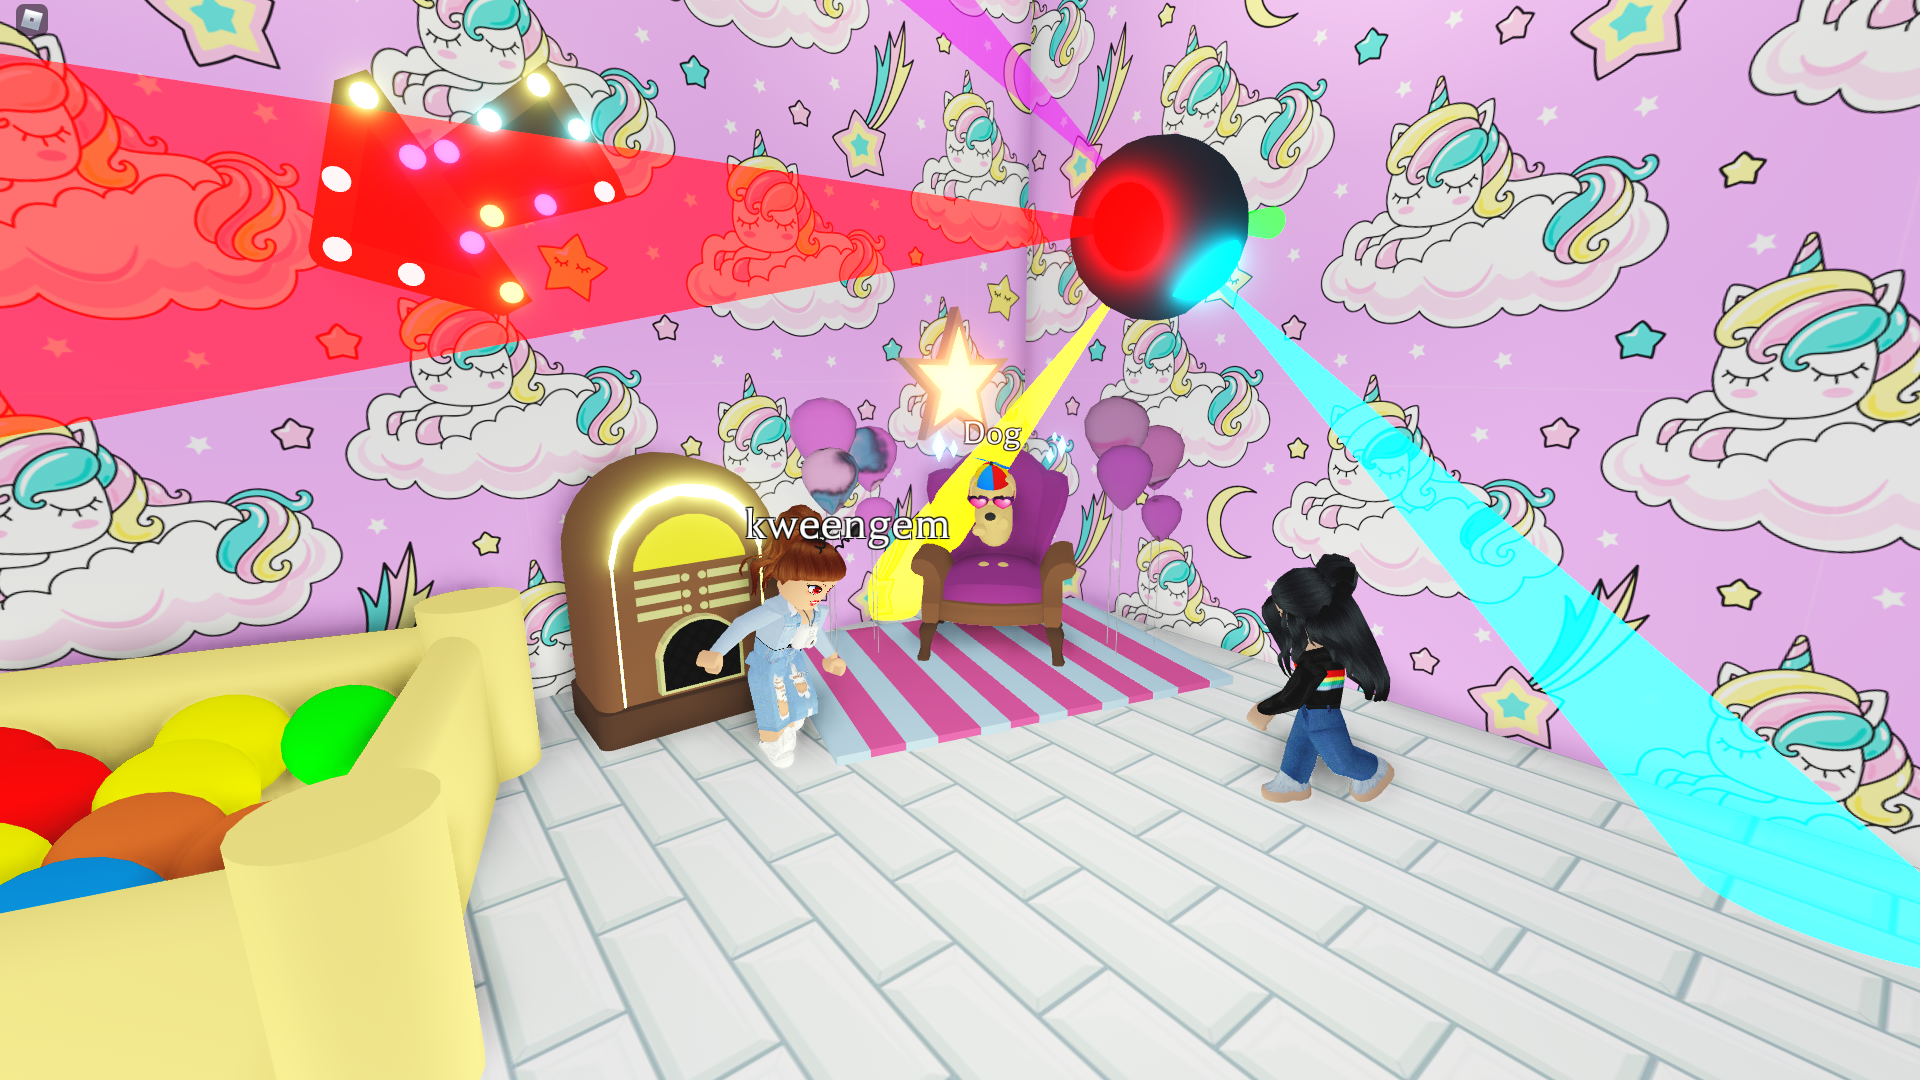 How These Developers Hope to Build a 100-Person Game Studio Inside 'Roblox'